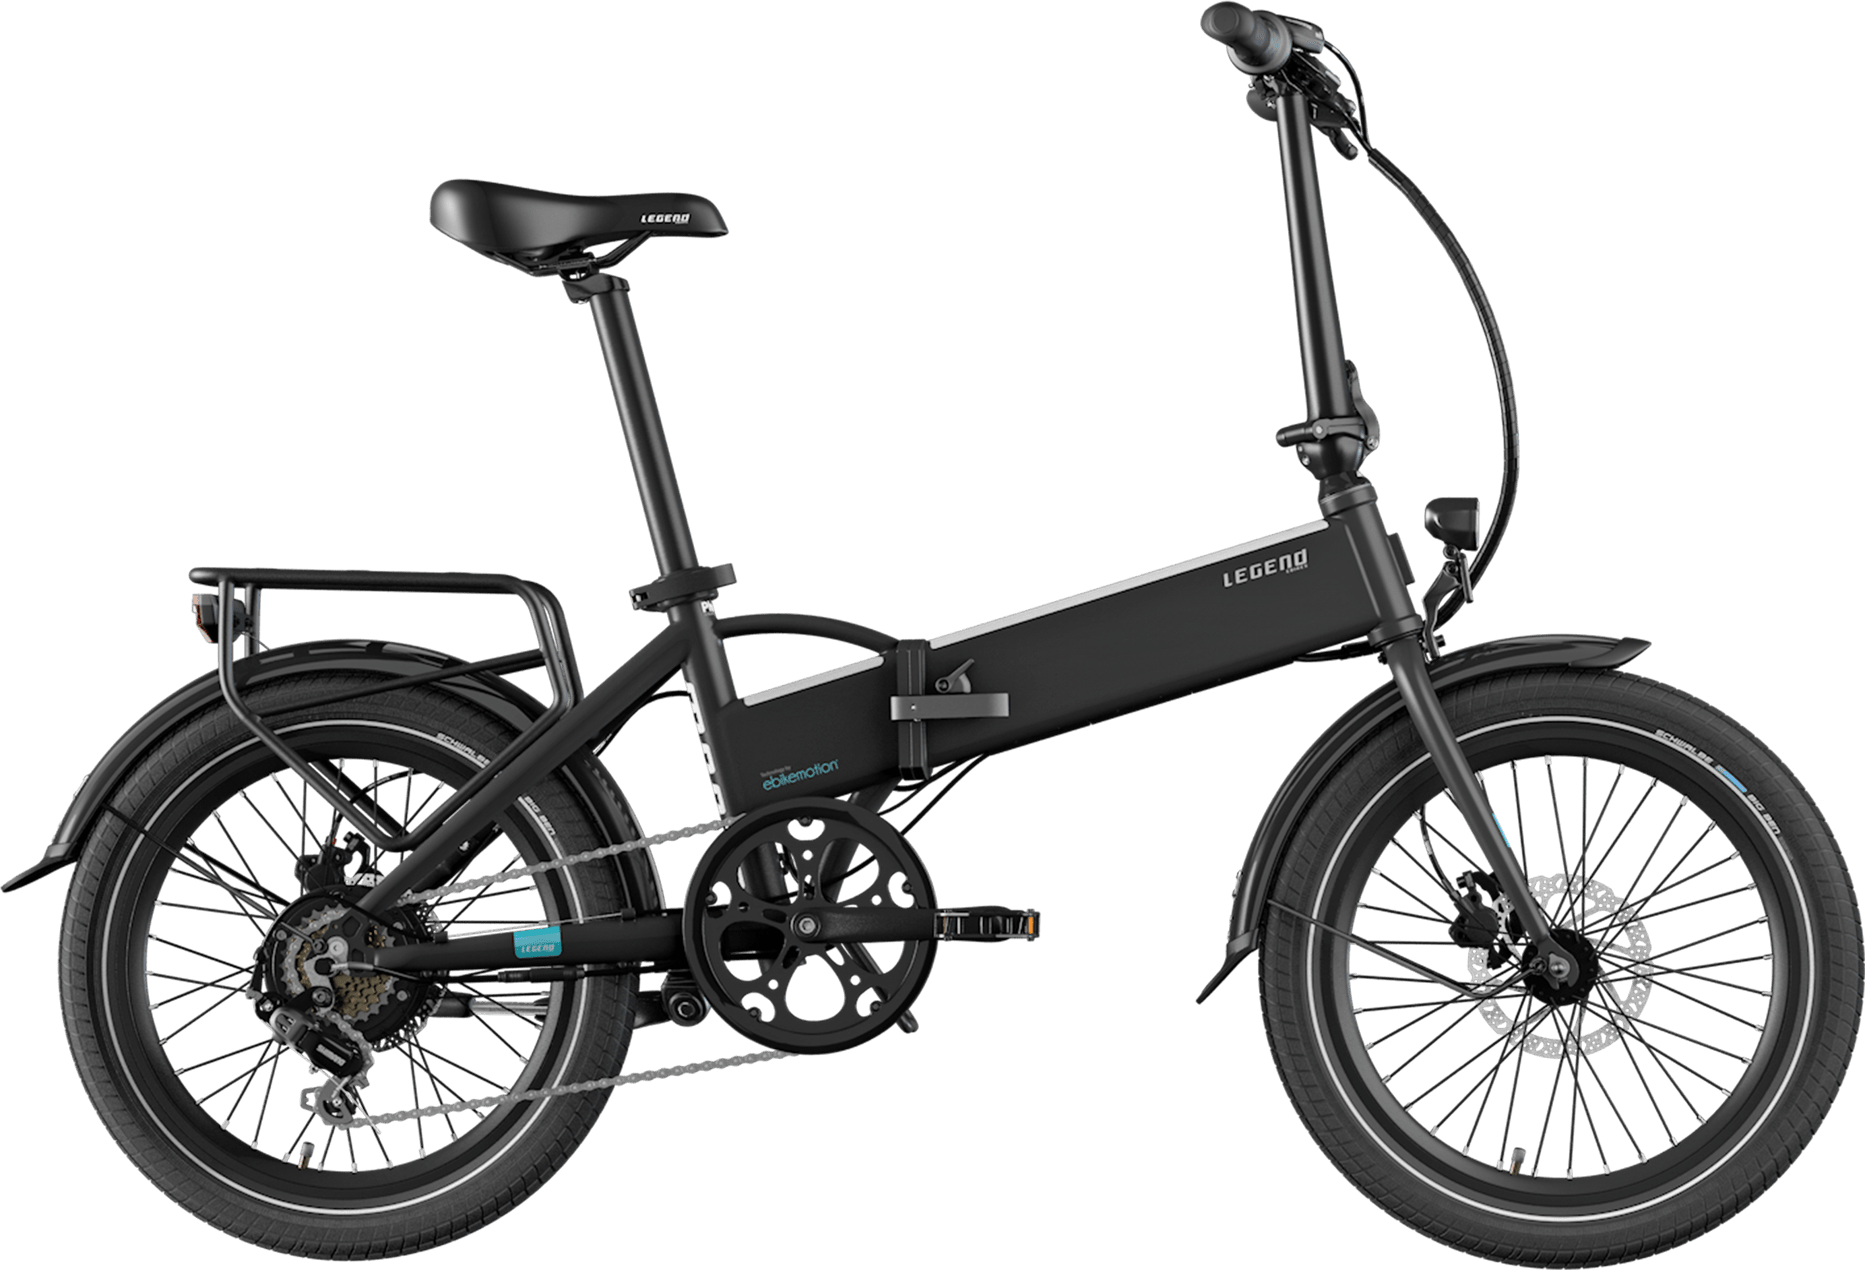 Smart Klapp E Bike Legend Monza 10.4ah Batterie Schwarz